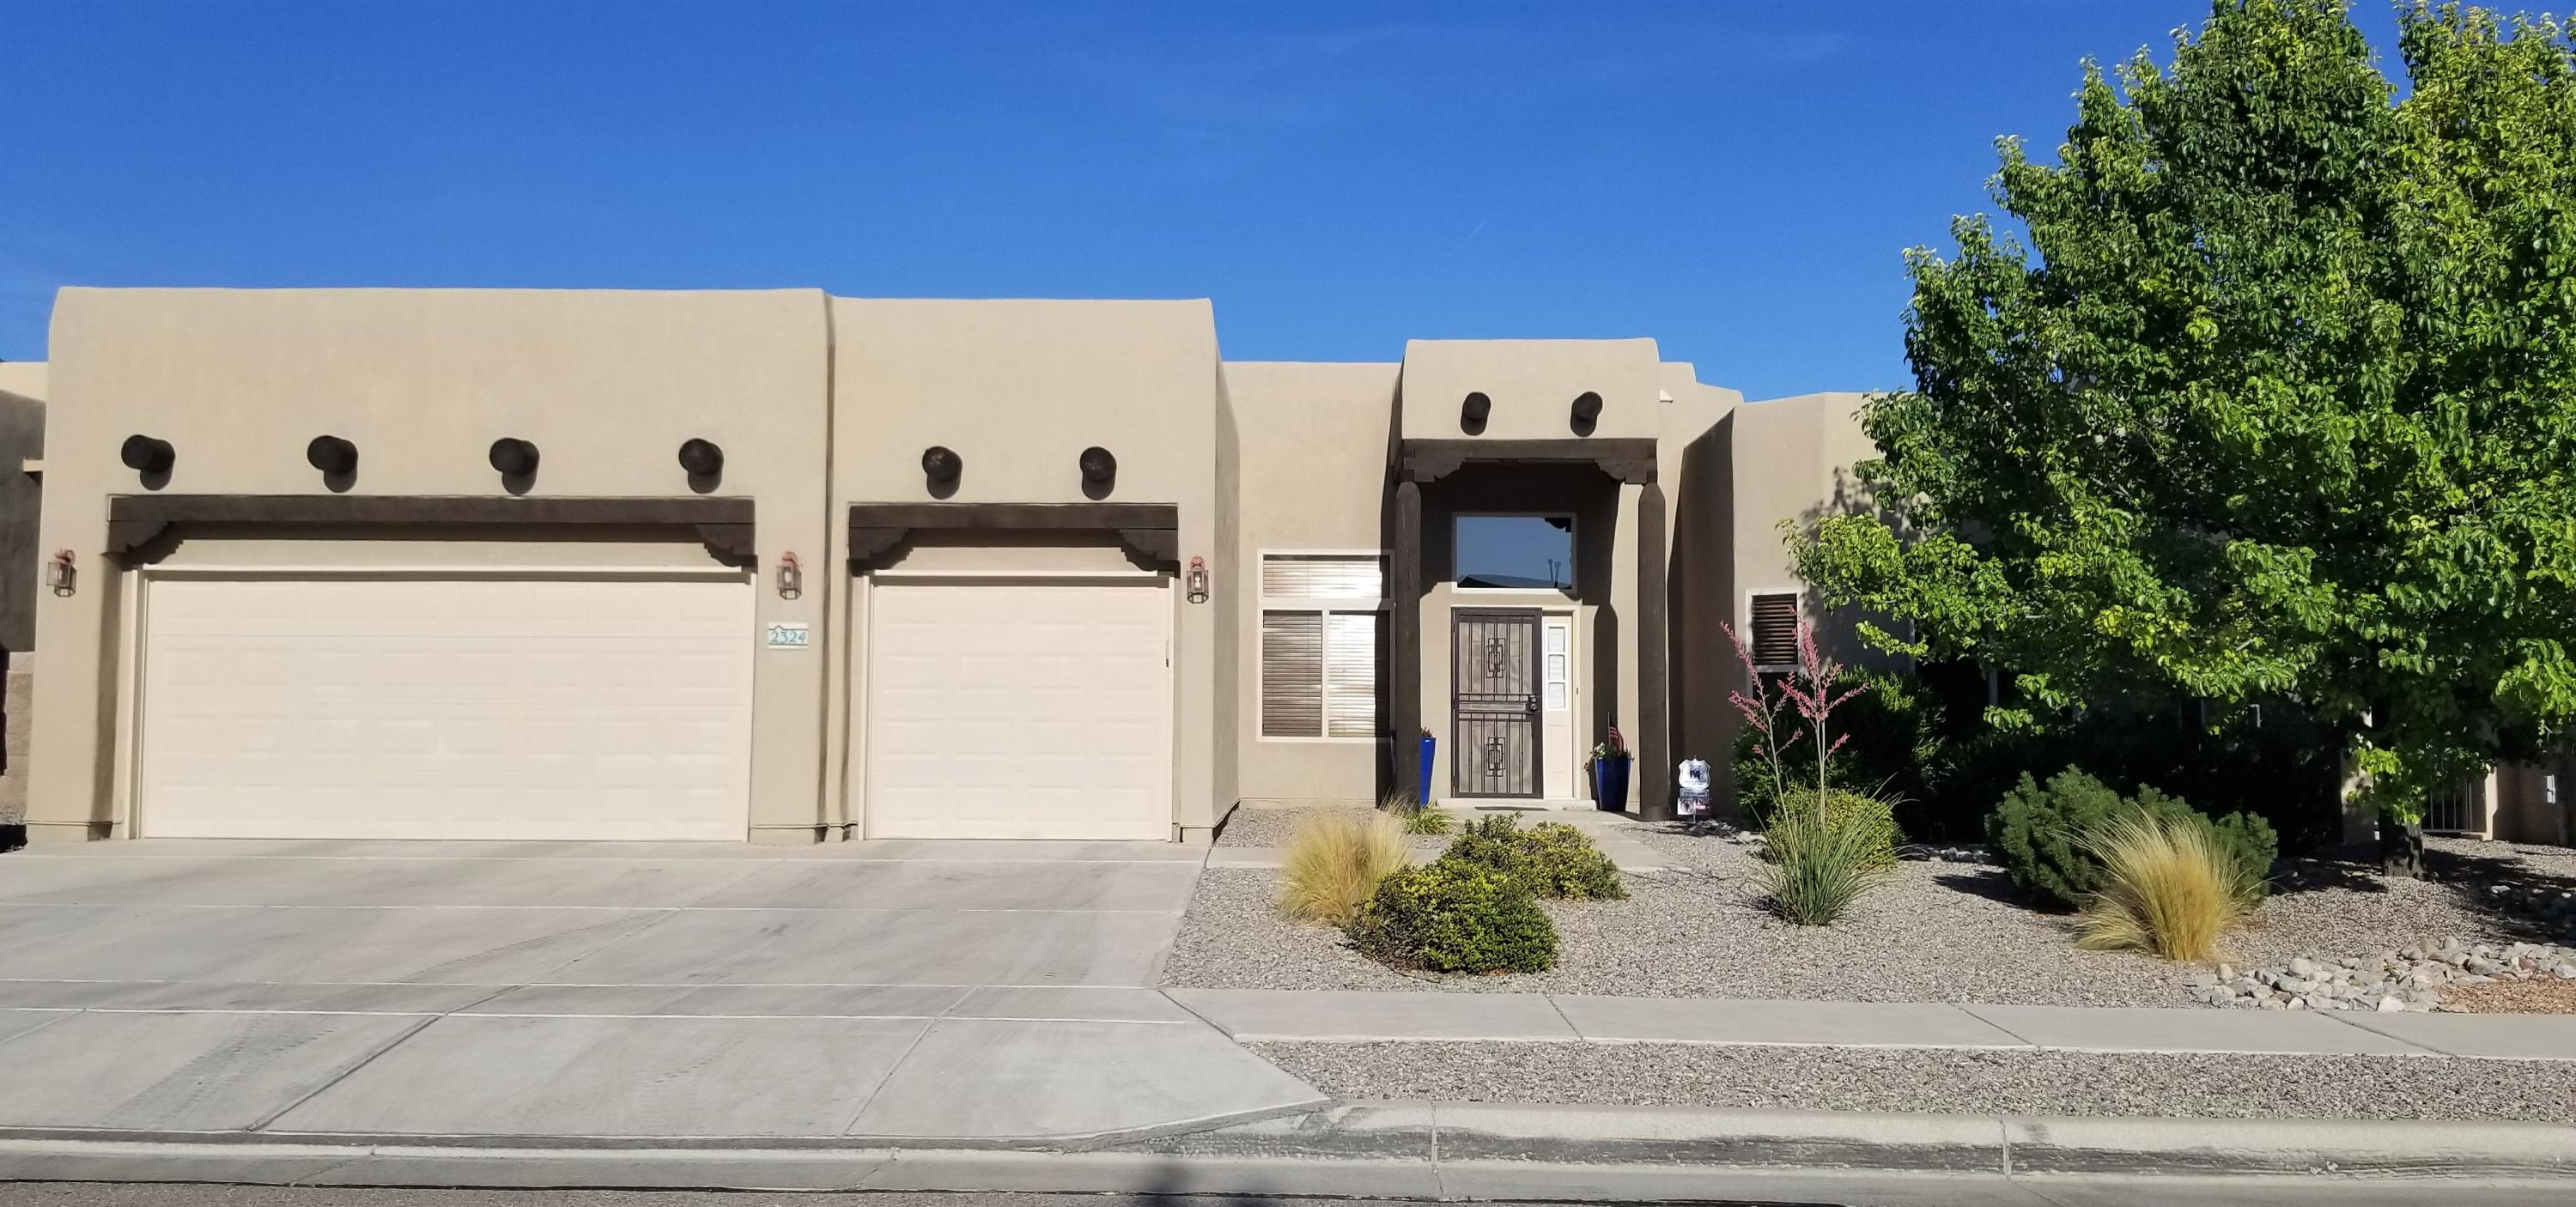 Come see this immaculate move in ready Southwest style Pueblo home with all the modern touches! It was a model for Kim Brooks and has all the extras like vigas, knotty alder cabinets, lighted nichos, kiva fireplace, recessed ceiling in formal dining room, granite counter tops, breakfast bar, tile in all wet areas, 4 generous sized bedrooms, huge walk in master bedroom closet with built in shelves, master bathroom garden tub and separate shower, oversized 3 car garage, covered patio, dog run, walking trails and petroglyphs nearby, plus so much more! Don't miss out on your dream home, view it today!